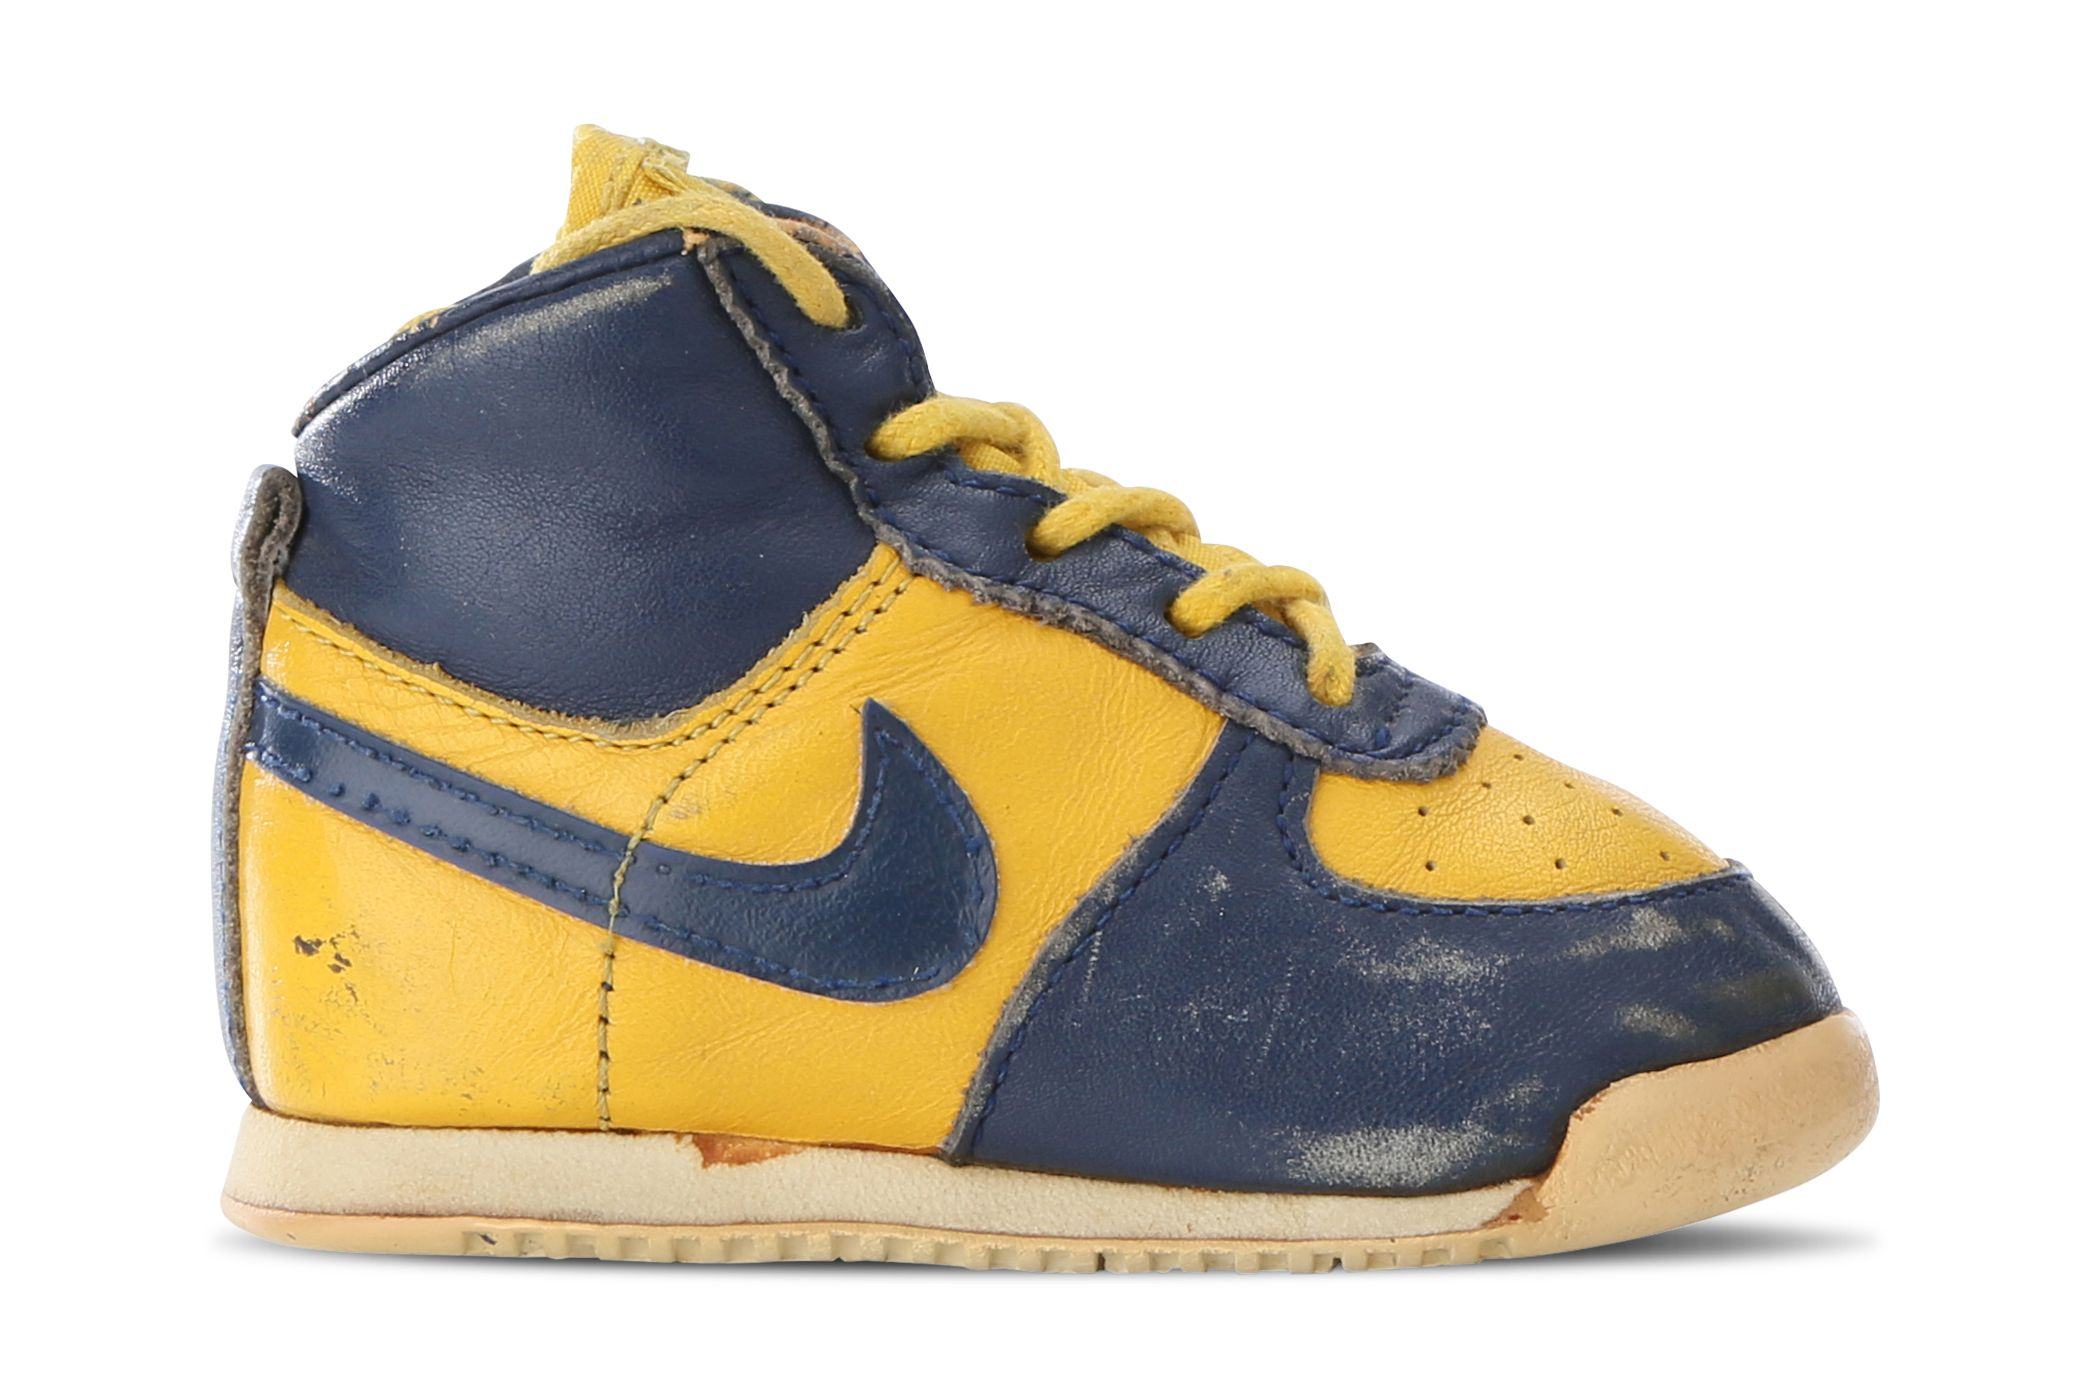 Busy Leung Nike Dunk Kids Michigan Vintage